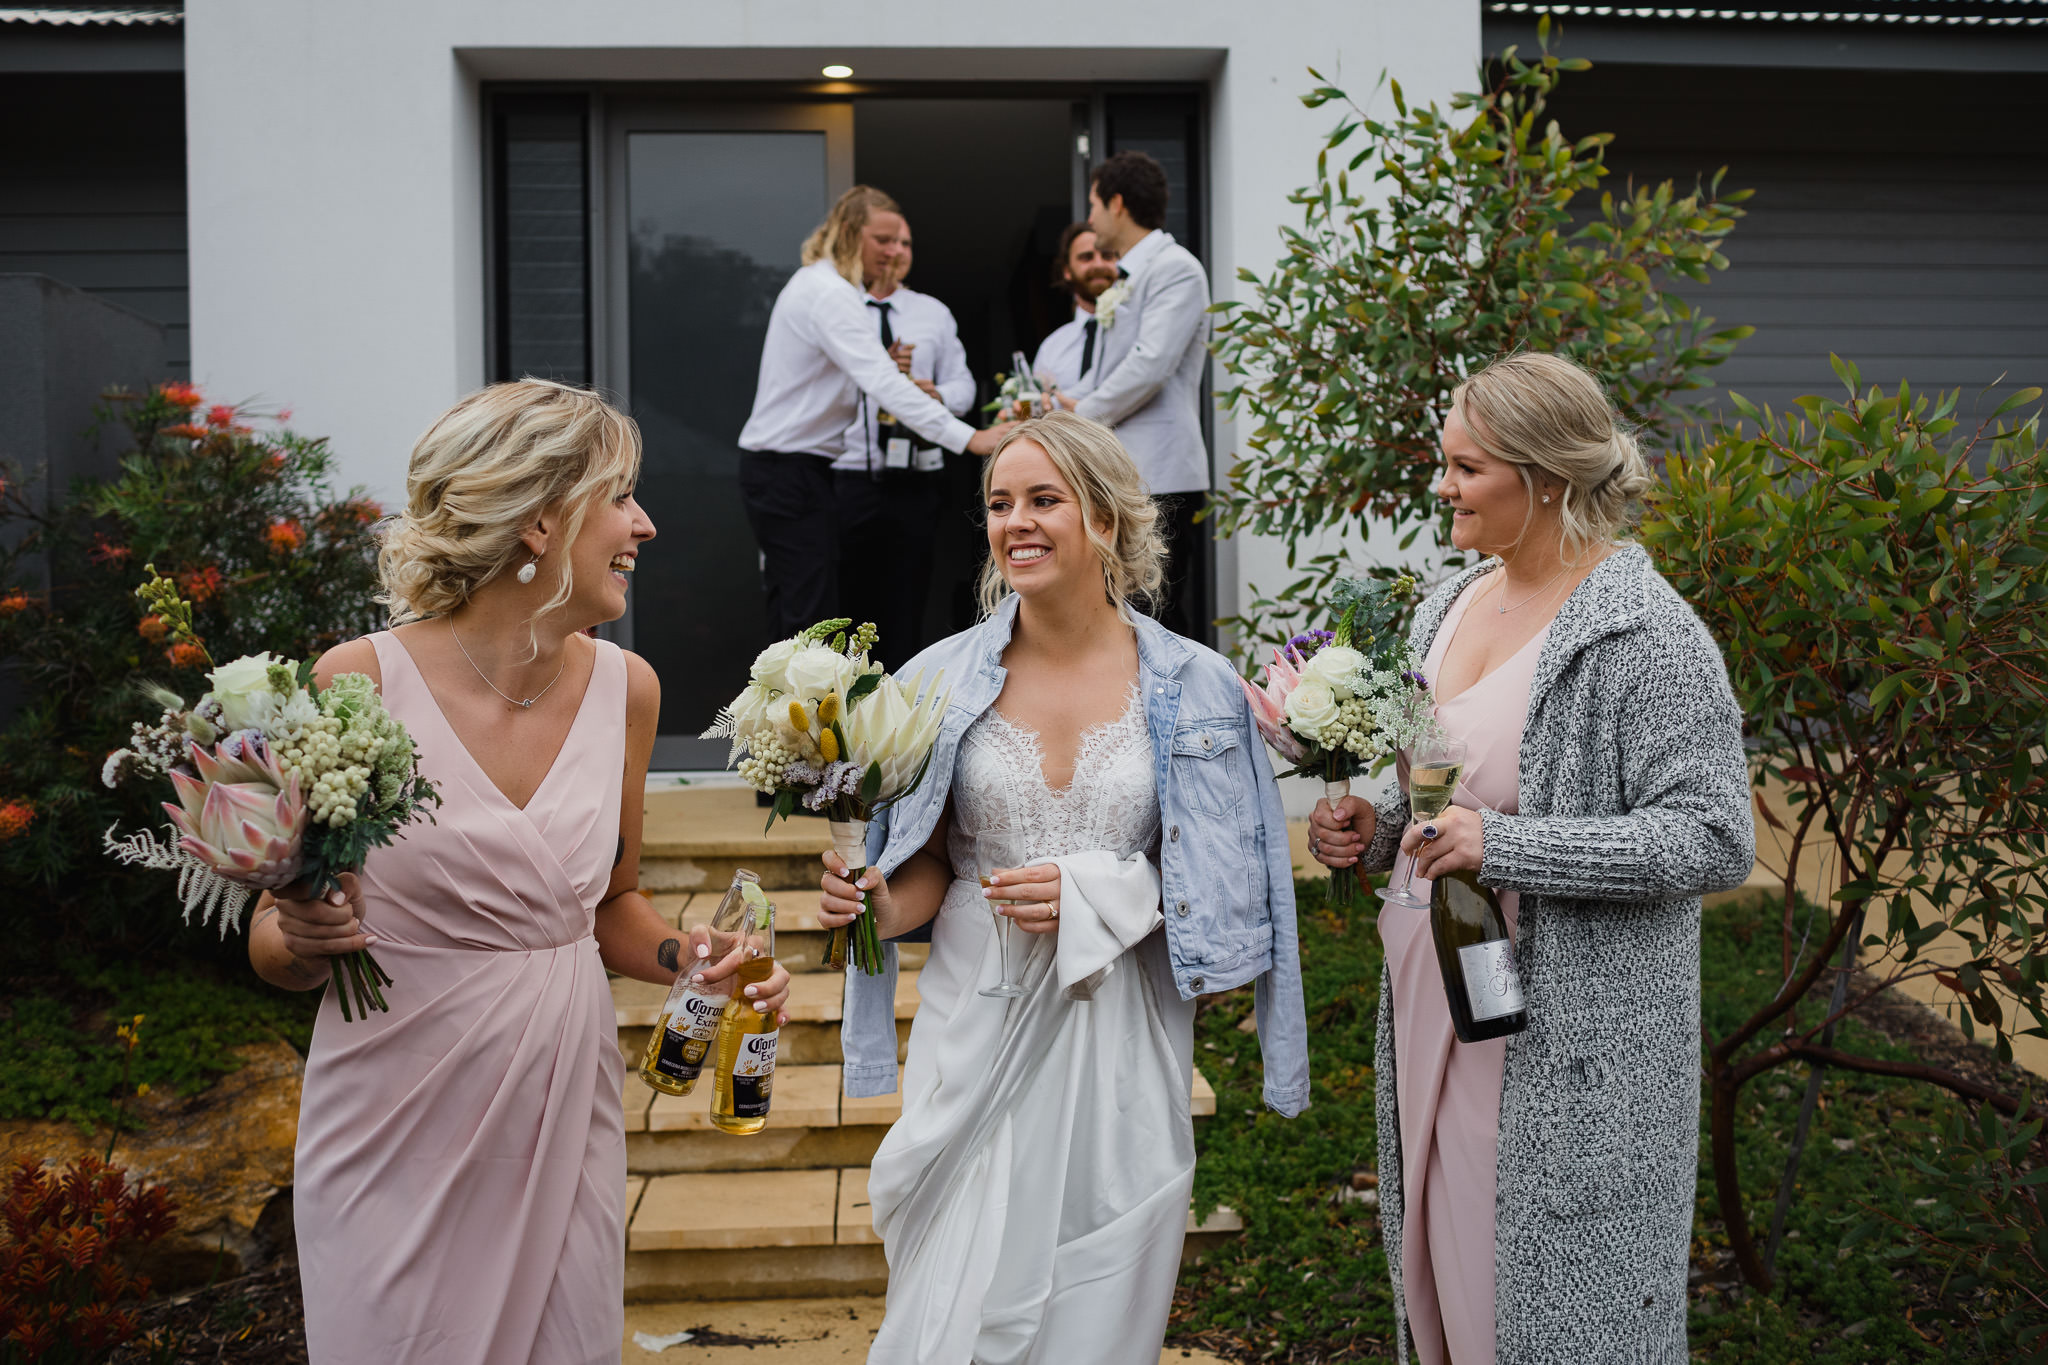 happy bride in denim jacket and laughing bridesmaids with bouquets, corona beer bottles and champagne